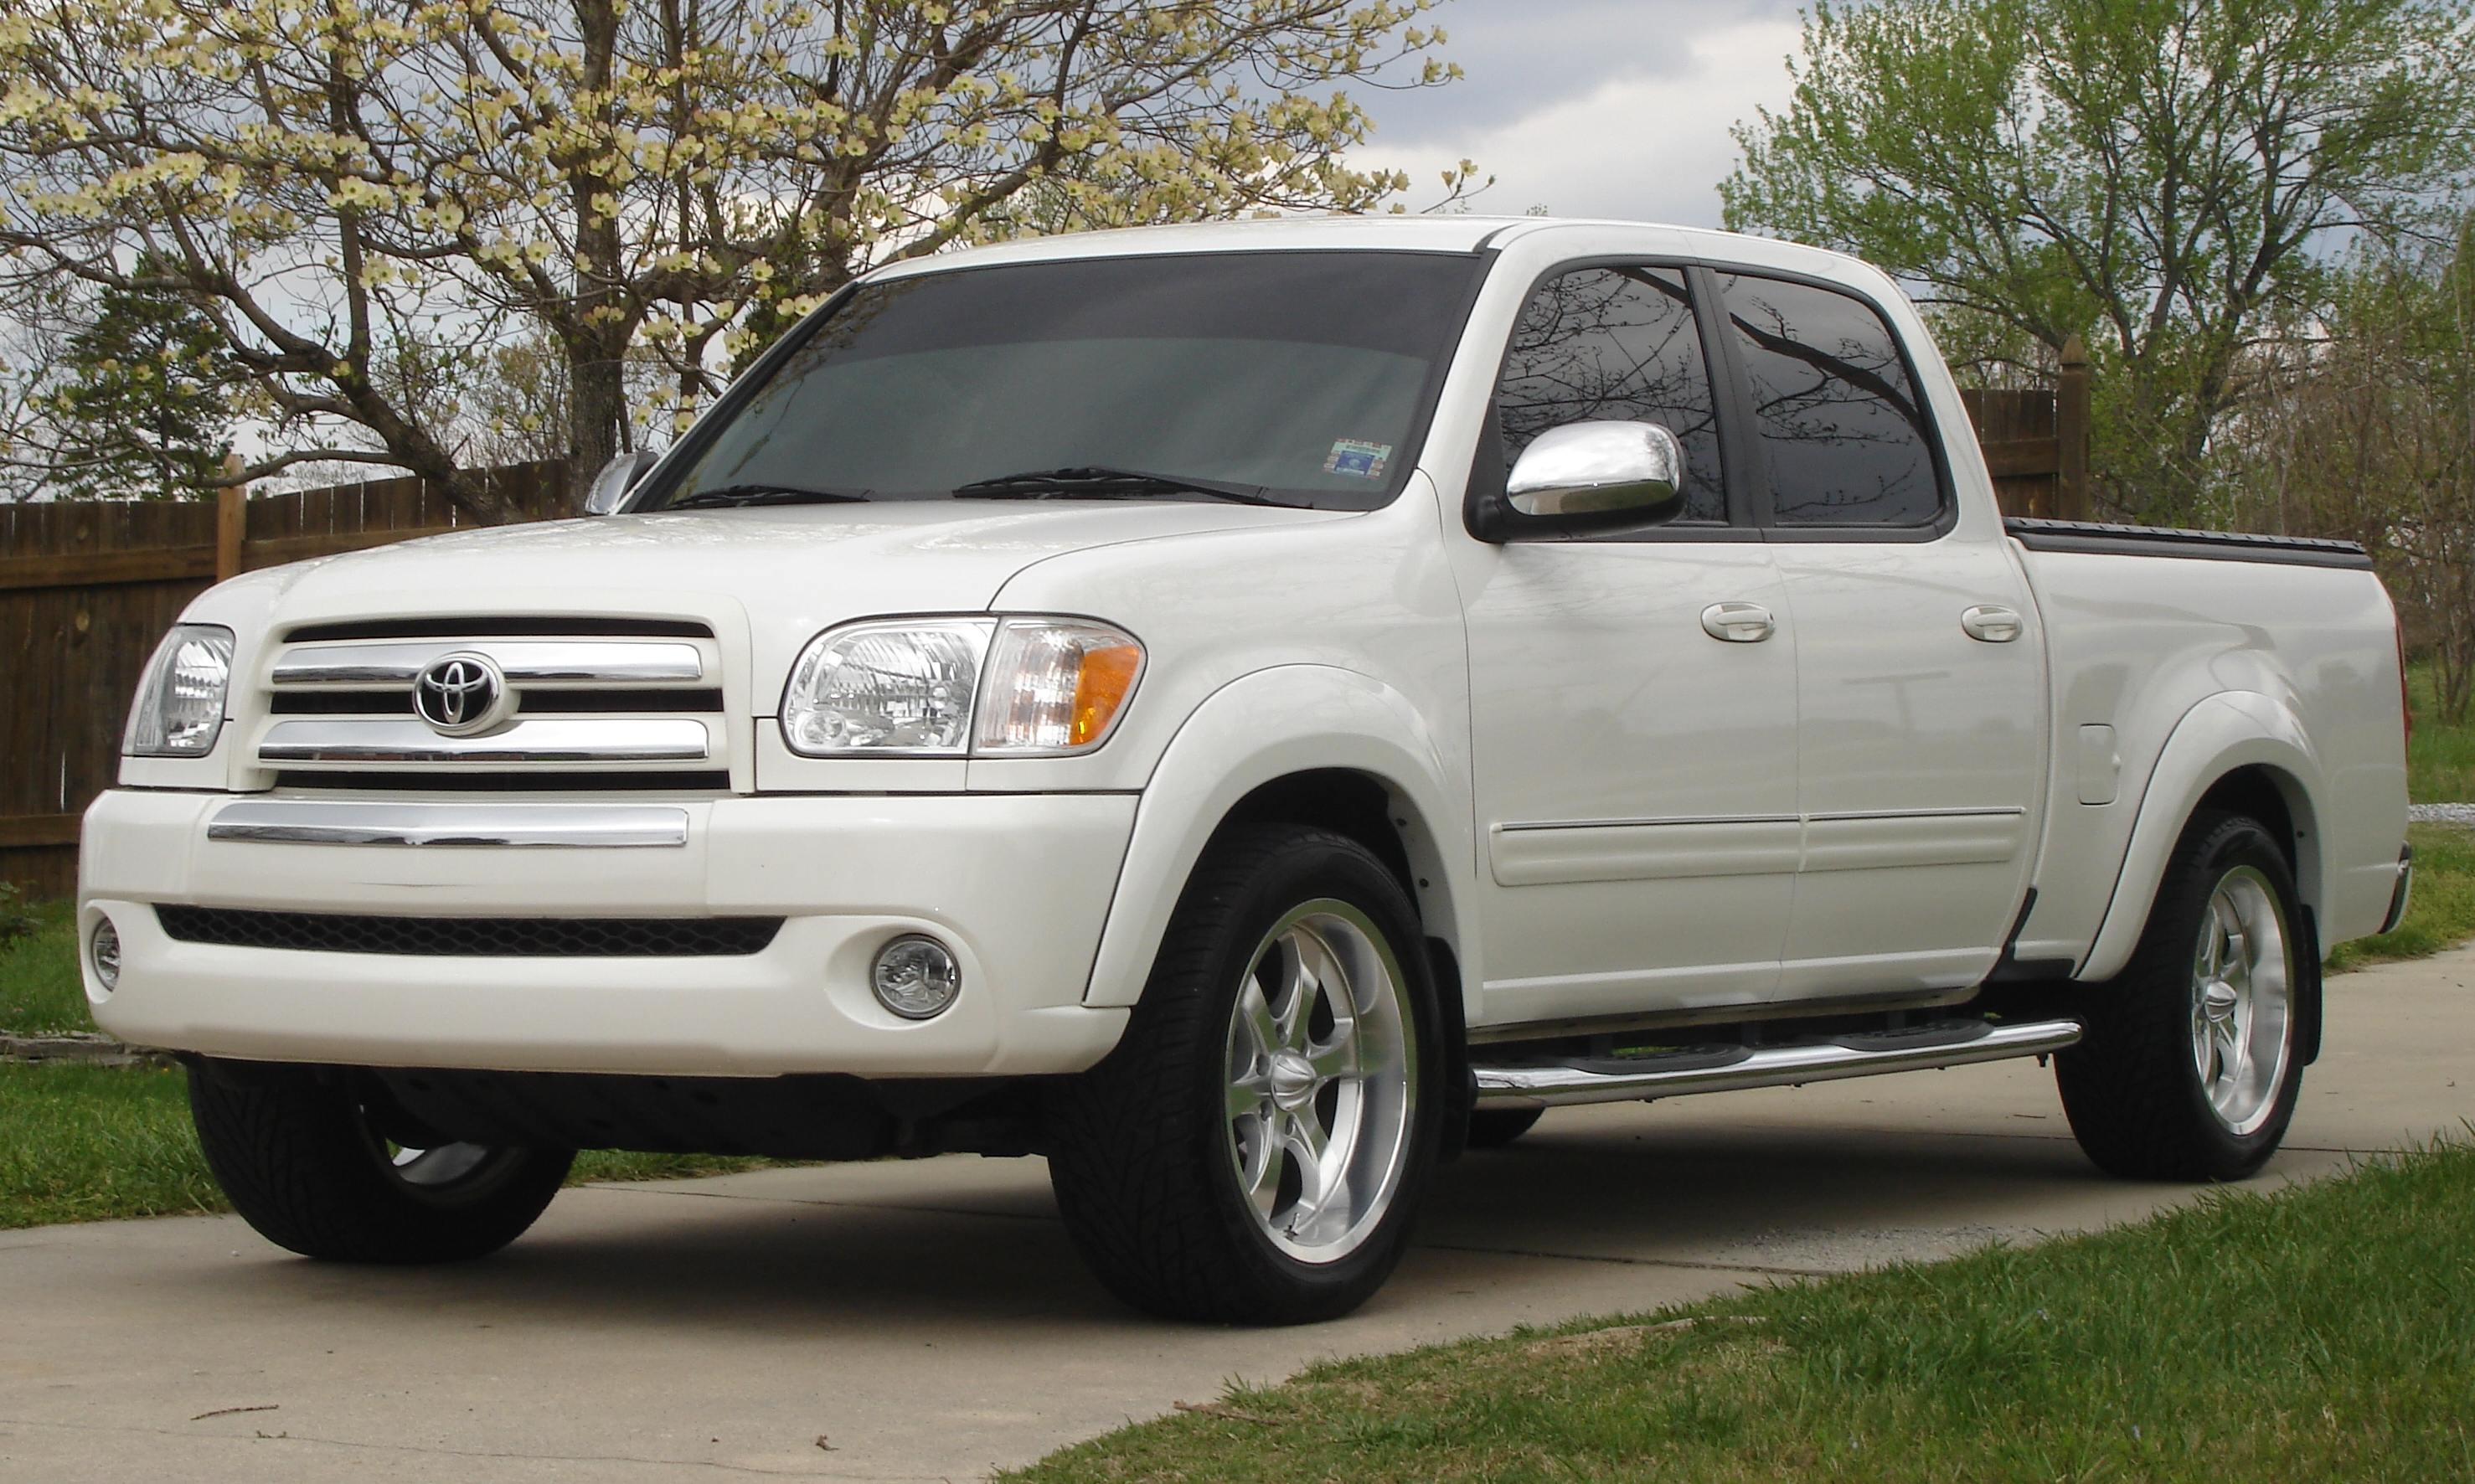 2006 toyota tundra information and photos momentcar. Black Bedroom Furniture Sets. Home Design Ideas